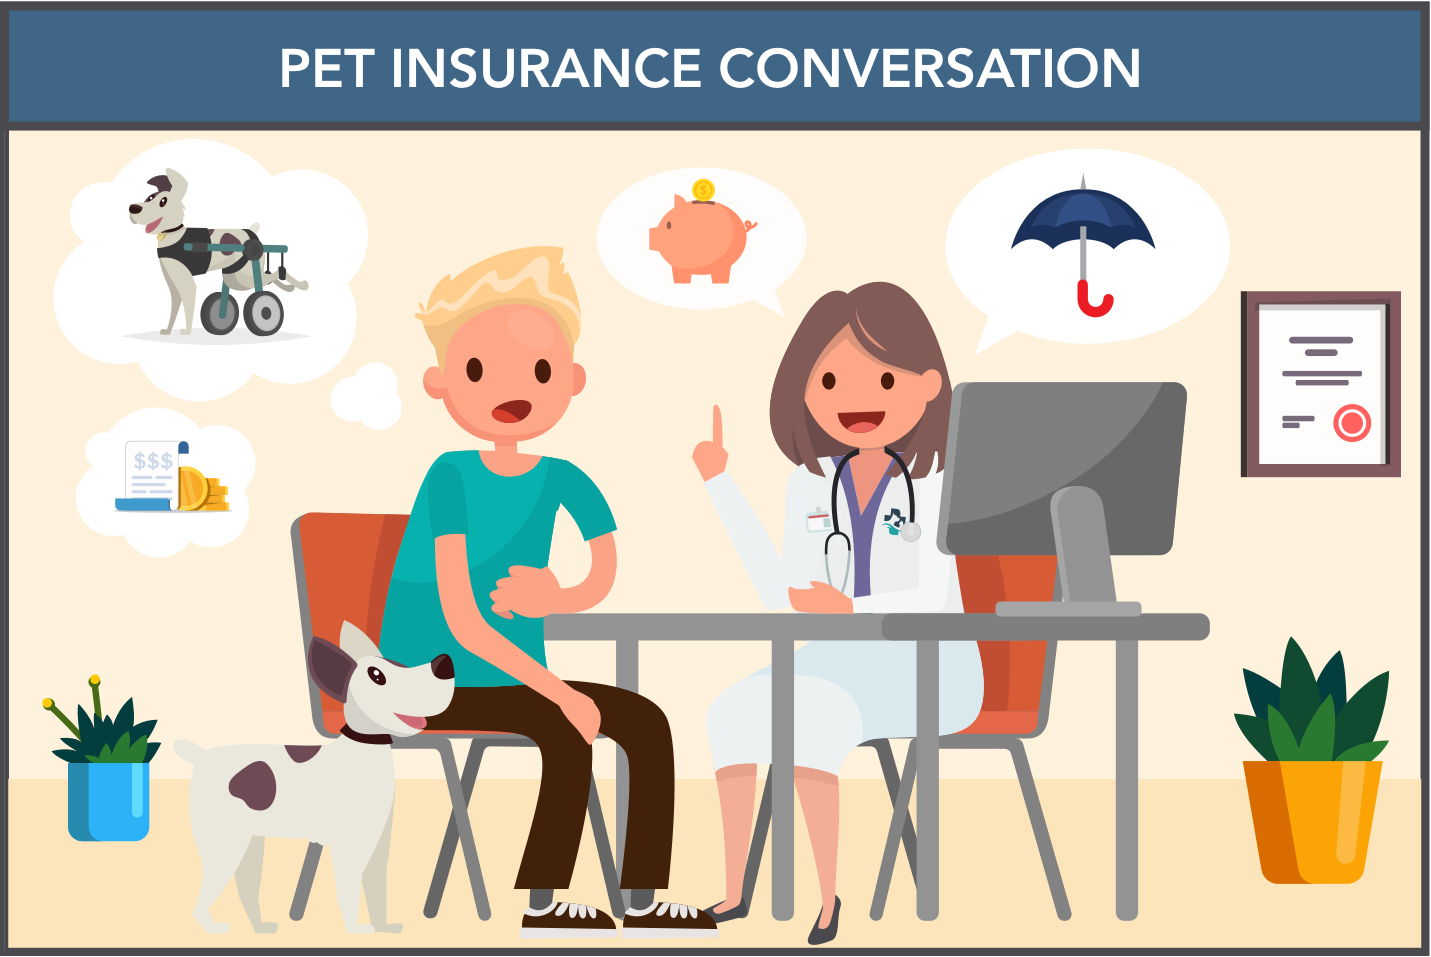 A veterinarian talk with a pet parent about pet insurance and why it's important to purchase.